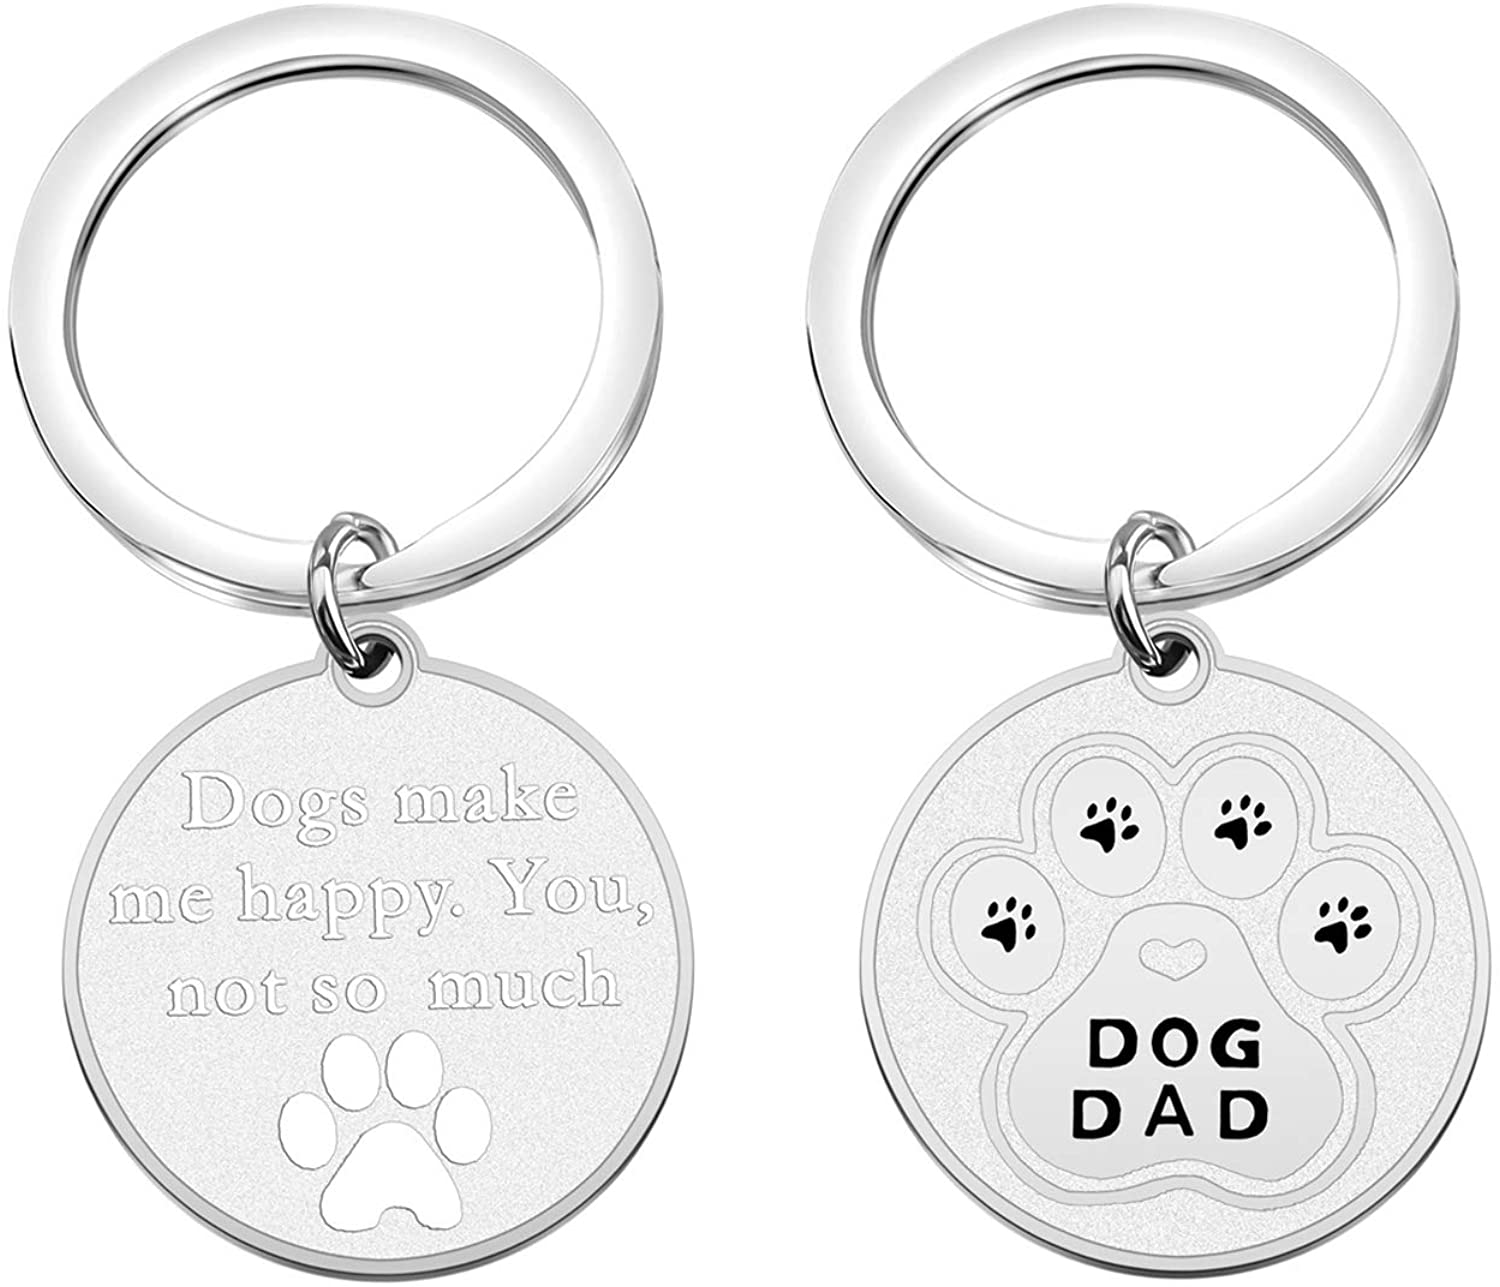 Gzrlyf Dog Owner Keychain Dogs Make Me Happy You not so Much Dog Lover Gifts for Dog Mom Dog Dad